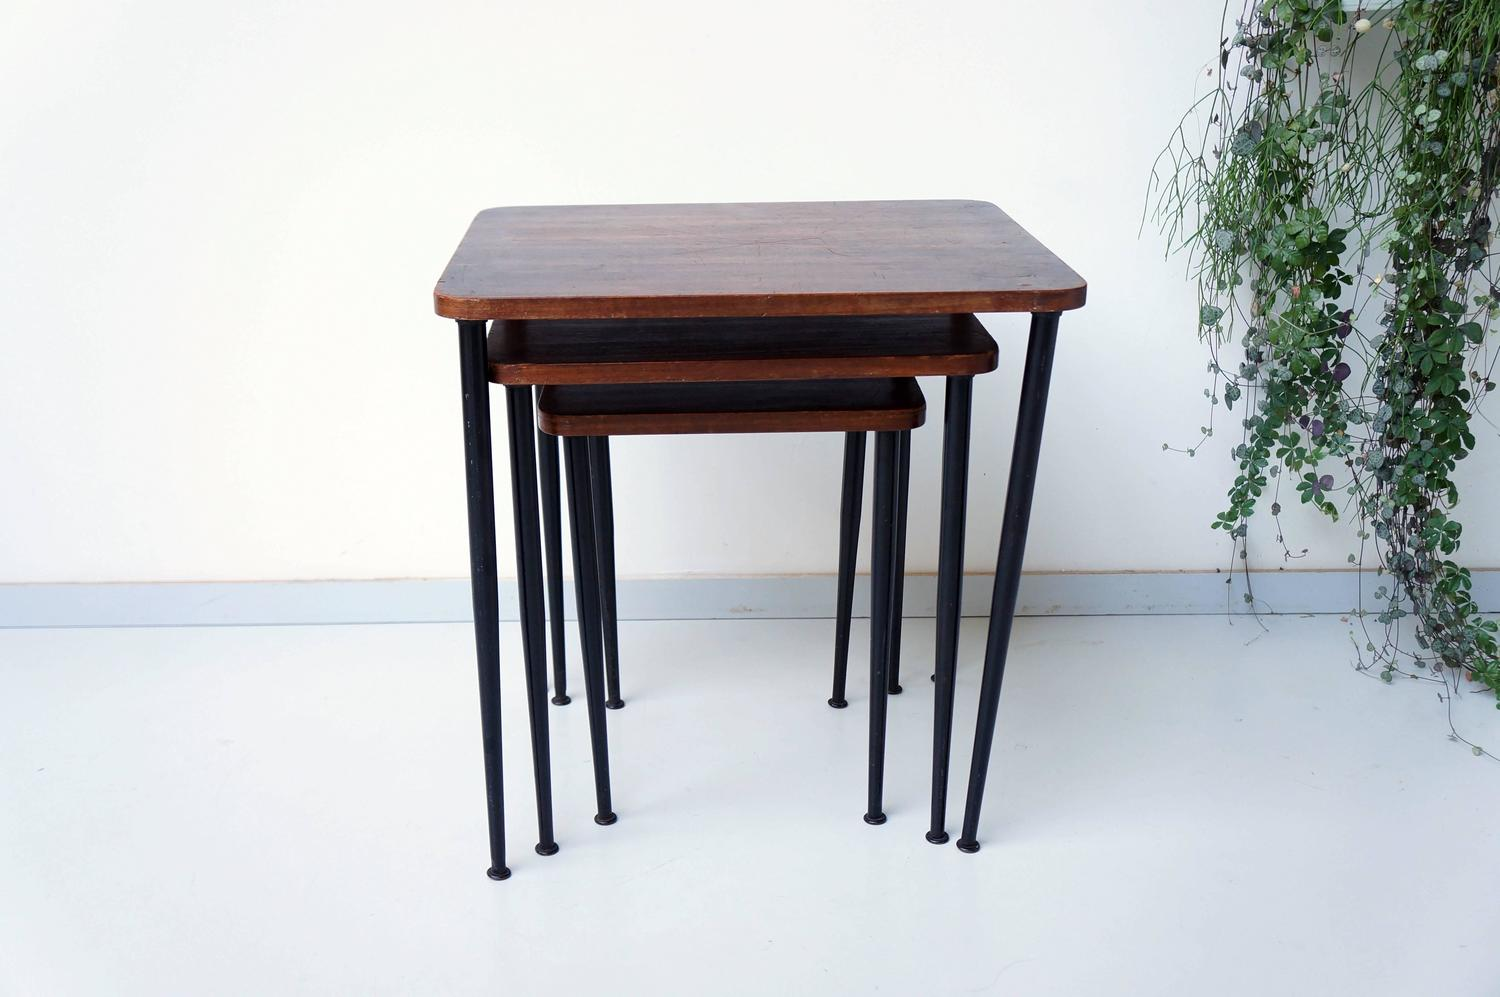 Teak Nesting Tables Black Metal 1960s At 1stdibs. Full resolution‎  image, nominally Width 1500 Height 997 pixels, image with #663425.